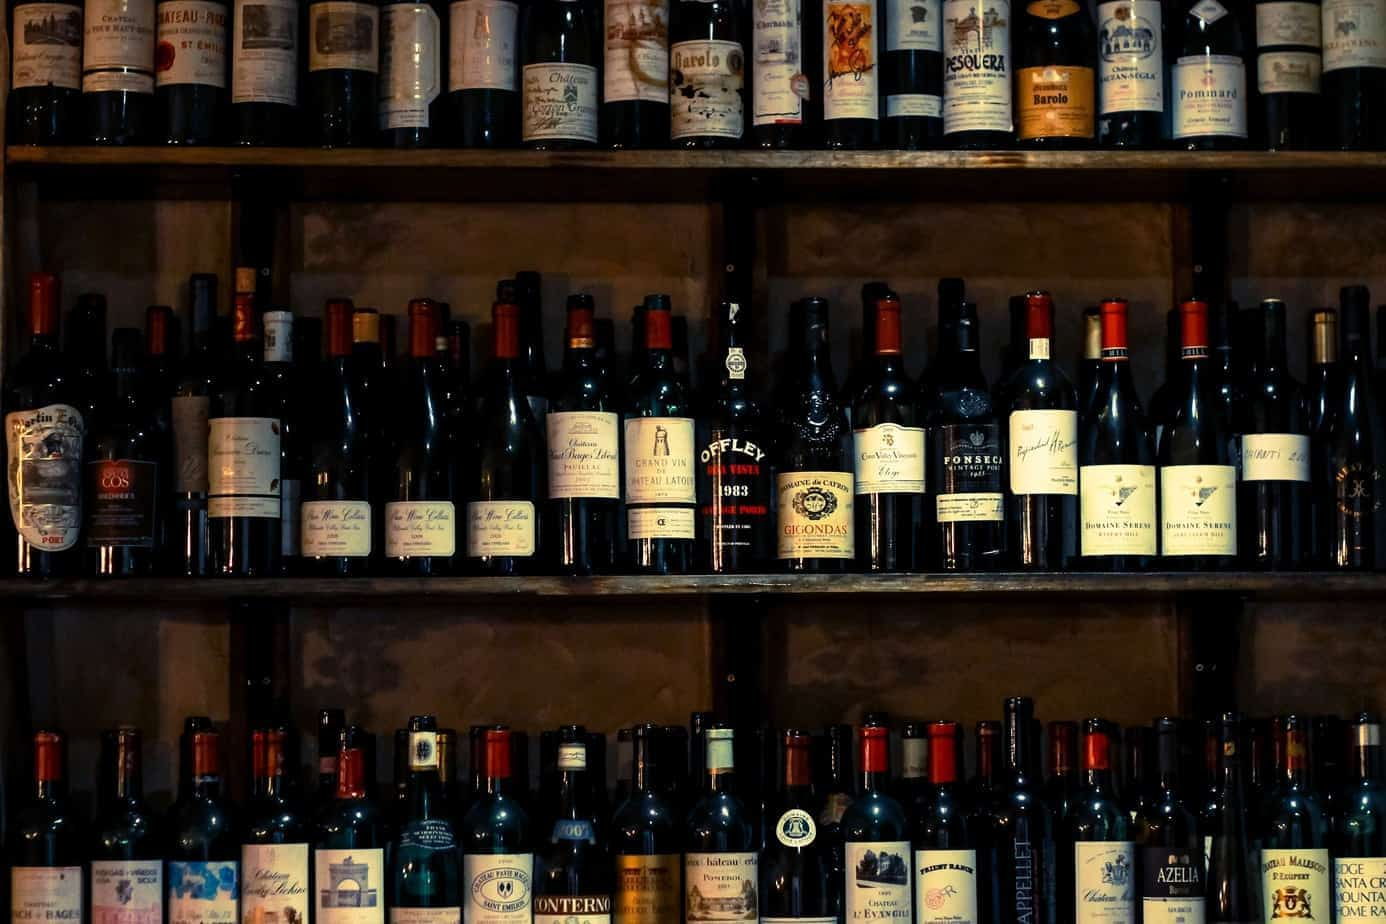 The Wine Shelf